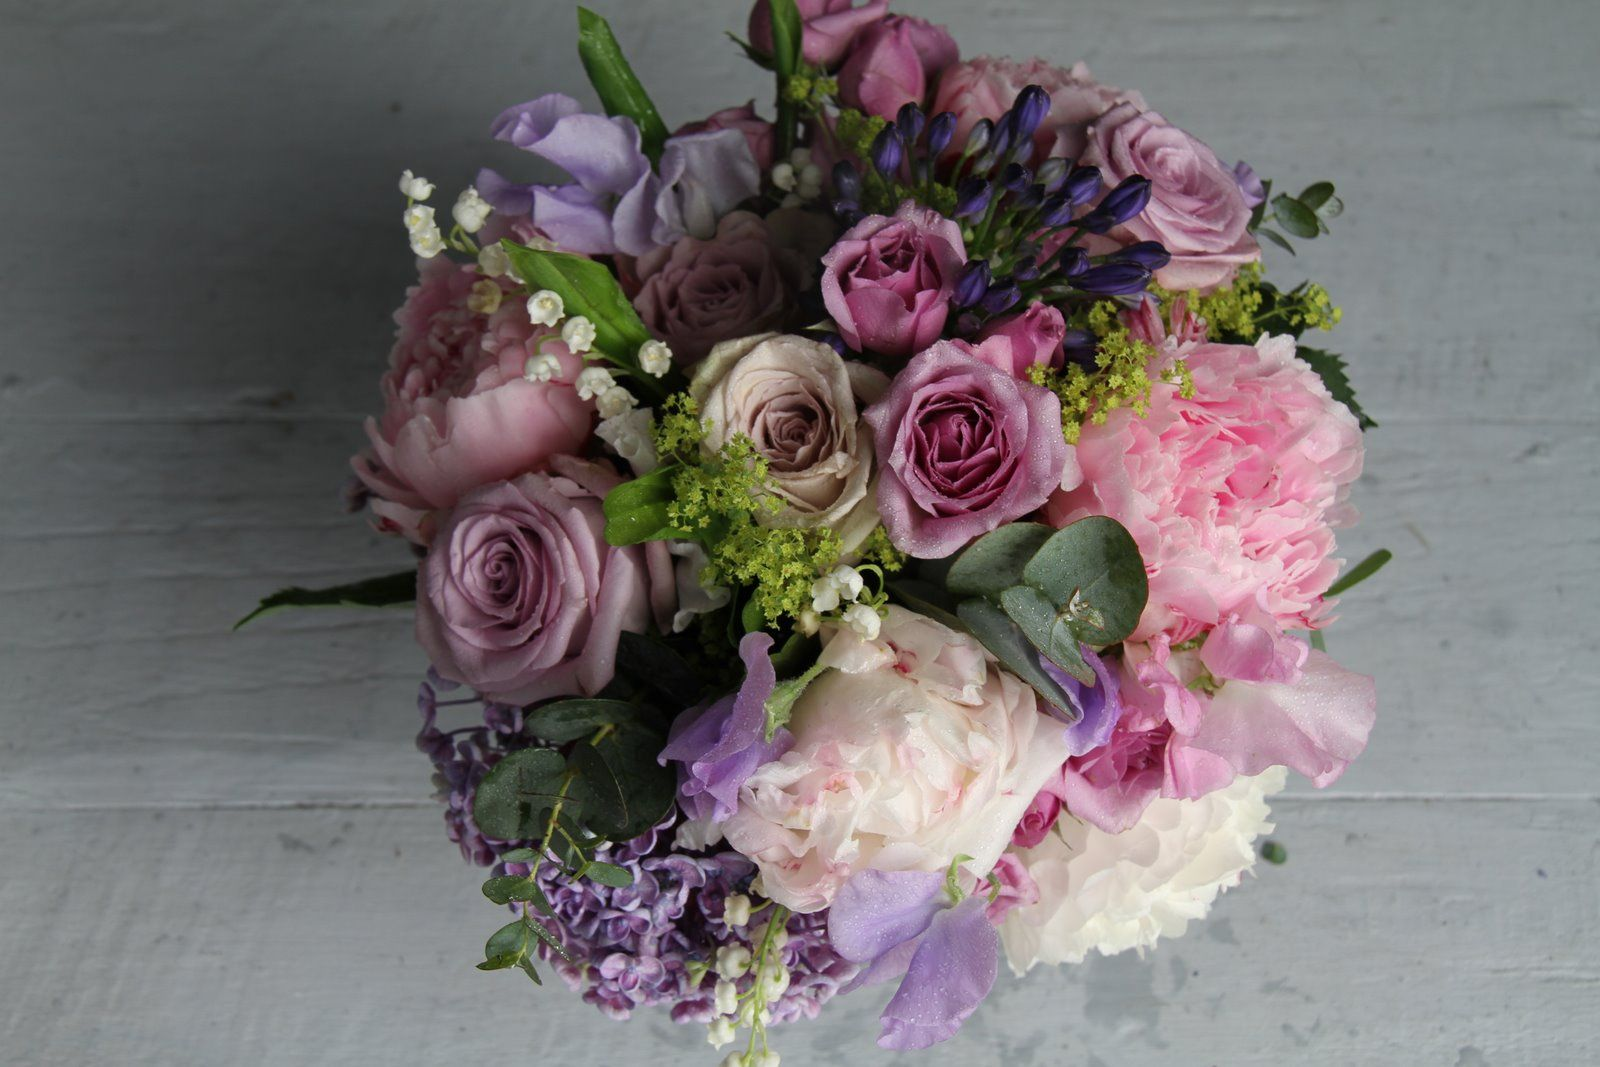 lilac lavender pink rose bouquet | gorgeous summer wedding bouquet in pinks and lavender blues i ve ...